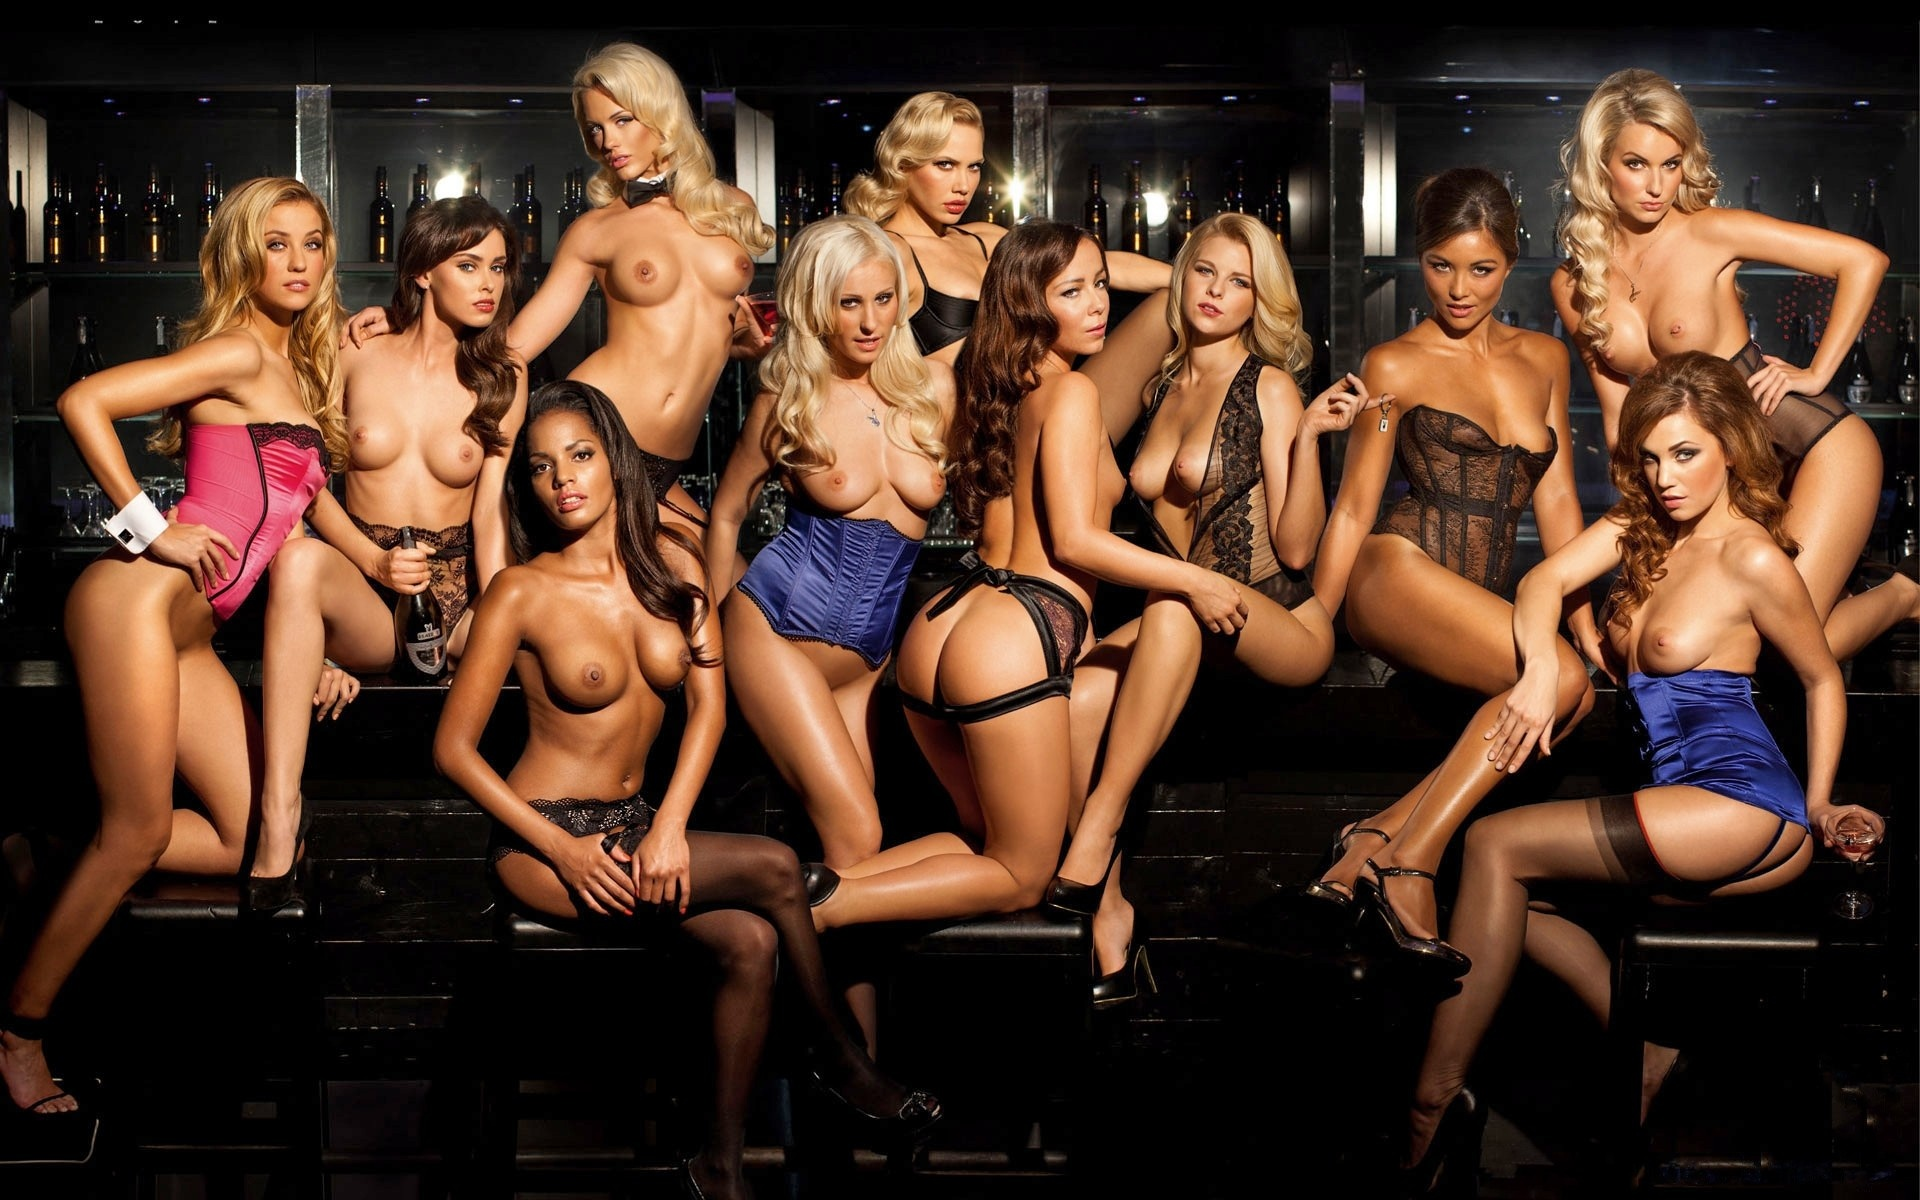 Playboy Playmates group models photo centerfold hd and ...